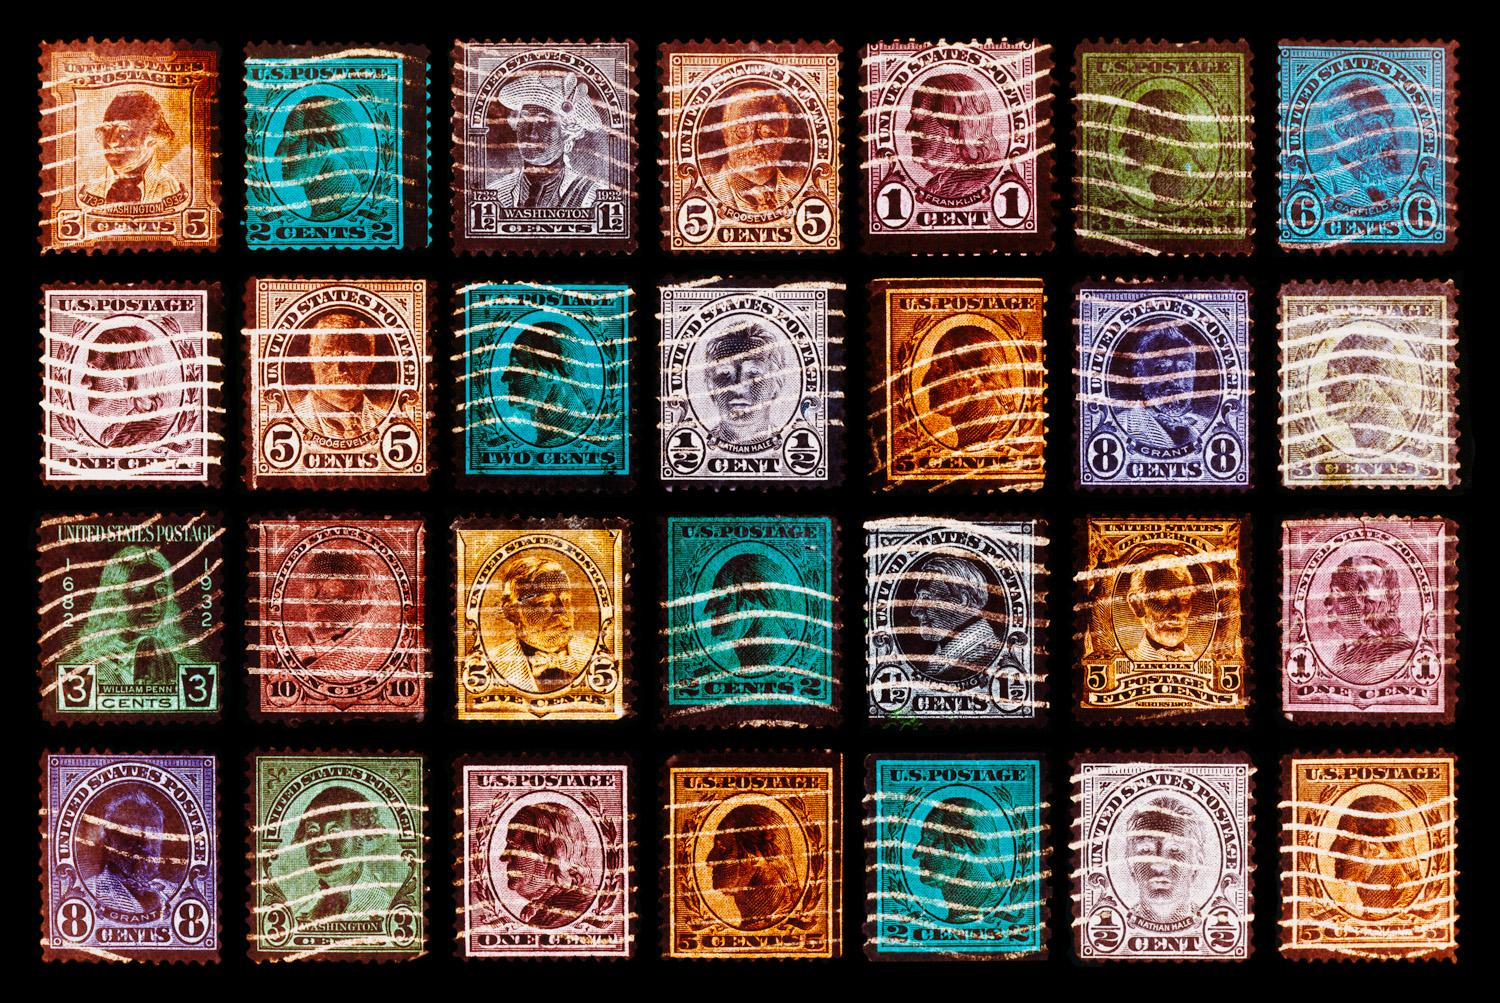 Stamp Collection, Stamped - Pop Art color photography